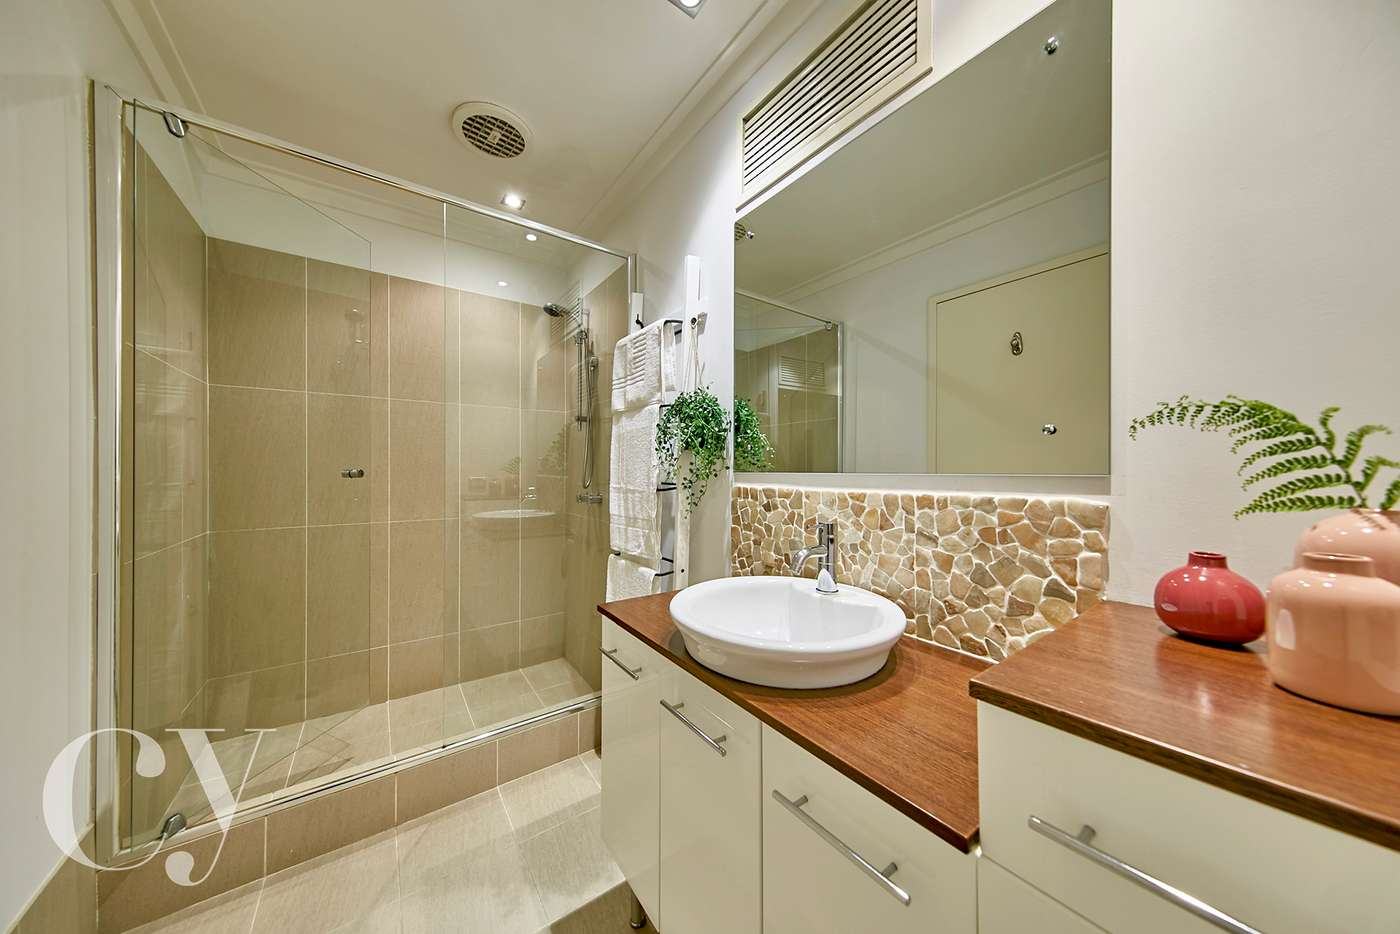 Sixth view of Homely townhouse listing, 2/74 Labouchere Road, South Perth WA 6151